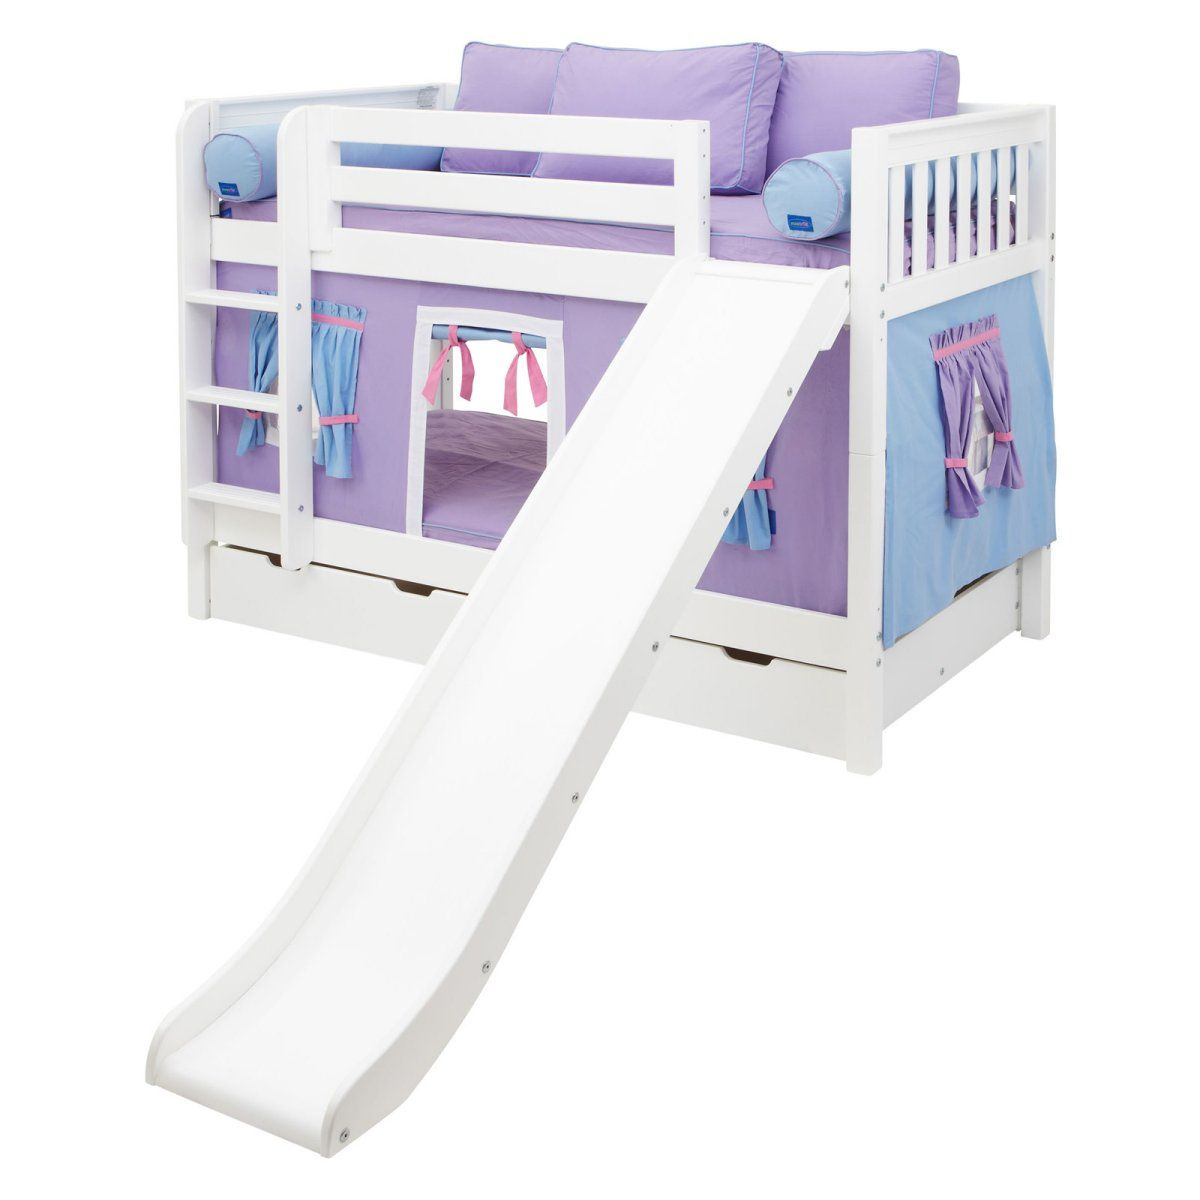 Smile Girl Twin over Twin Slat Tent Bunk Bed  sc 1 st  Pinterest & Smile Girl Twin over Twin Slat Tent Bunk Bed | Bedrooms ...